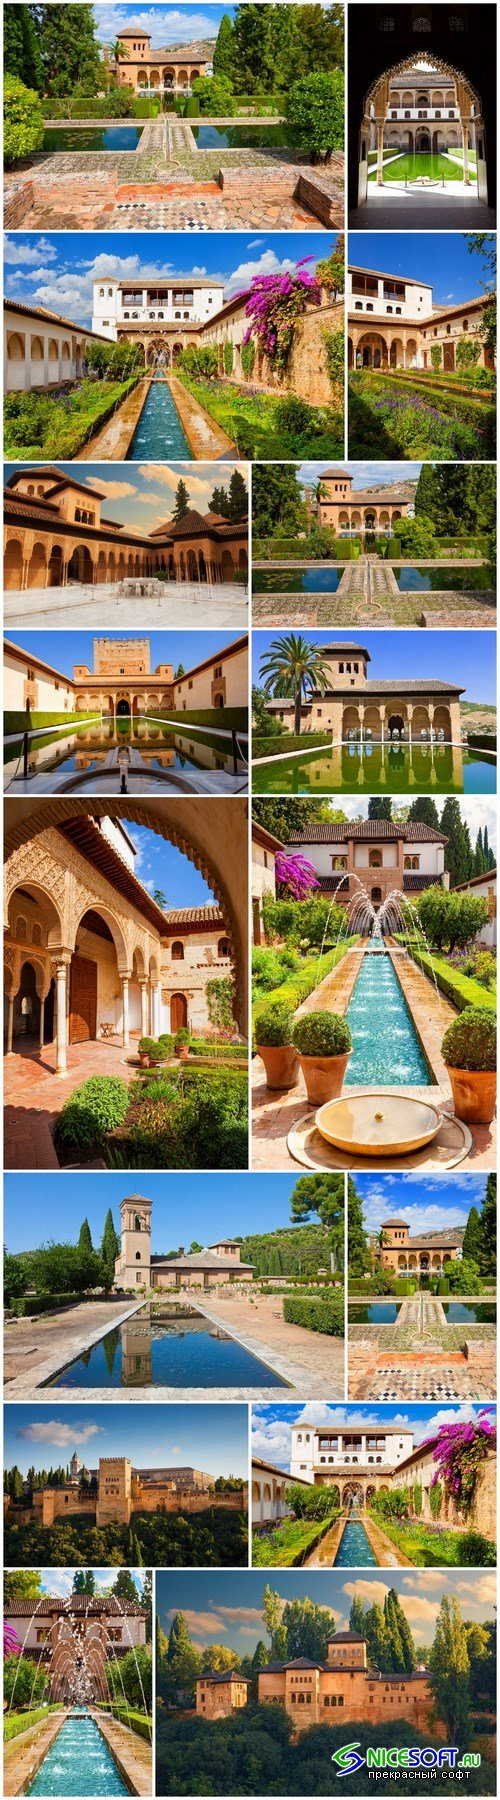 Beauty of Alhambra de Granada - 16xUHQ JPEG Photo Stock